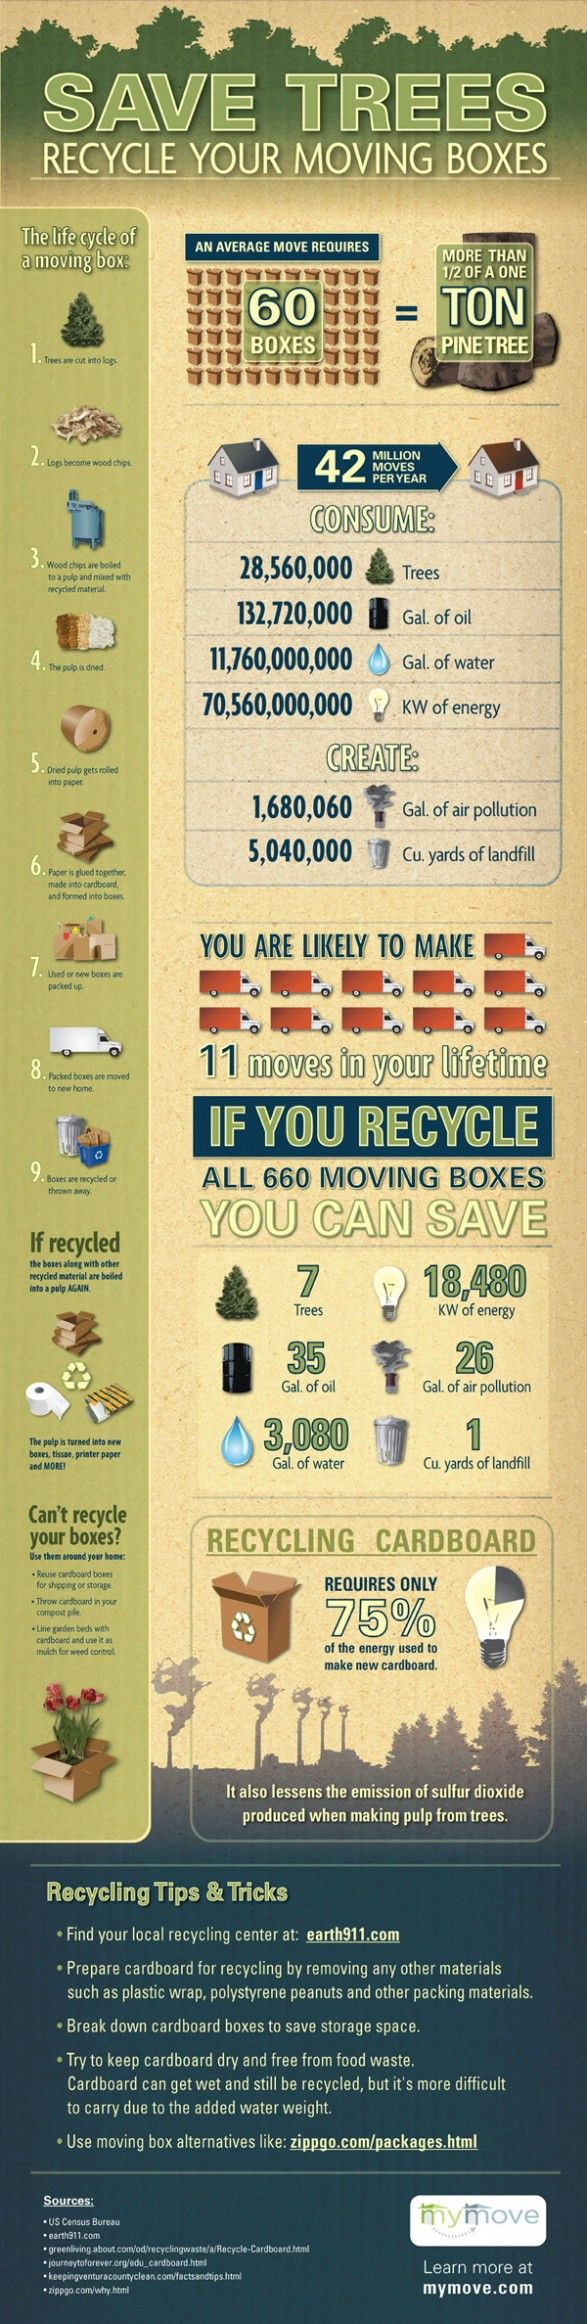 SAVE TREES | Recycle Your Moving Boxes (Infographic)